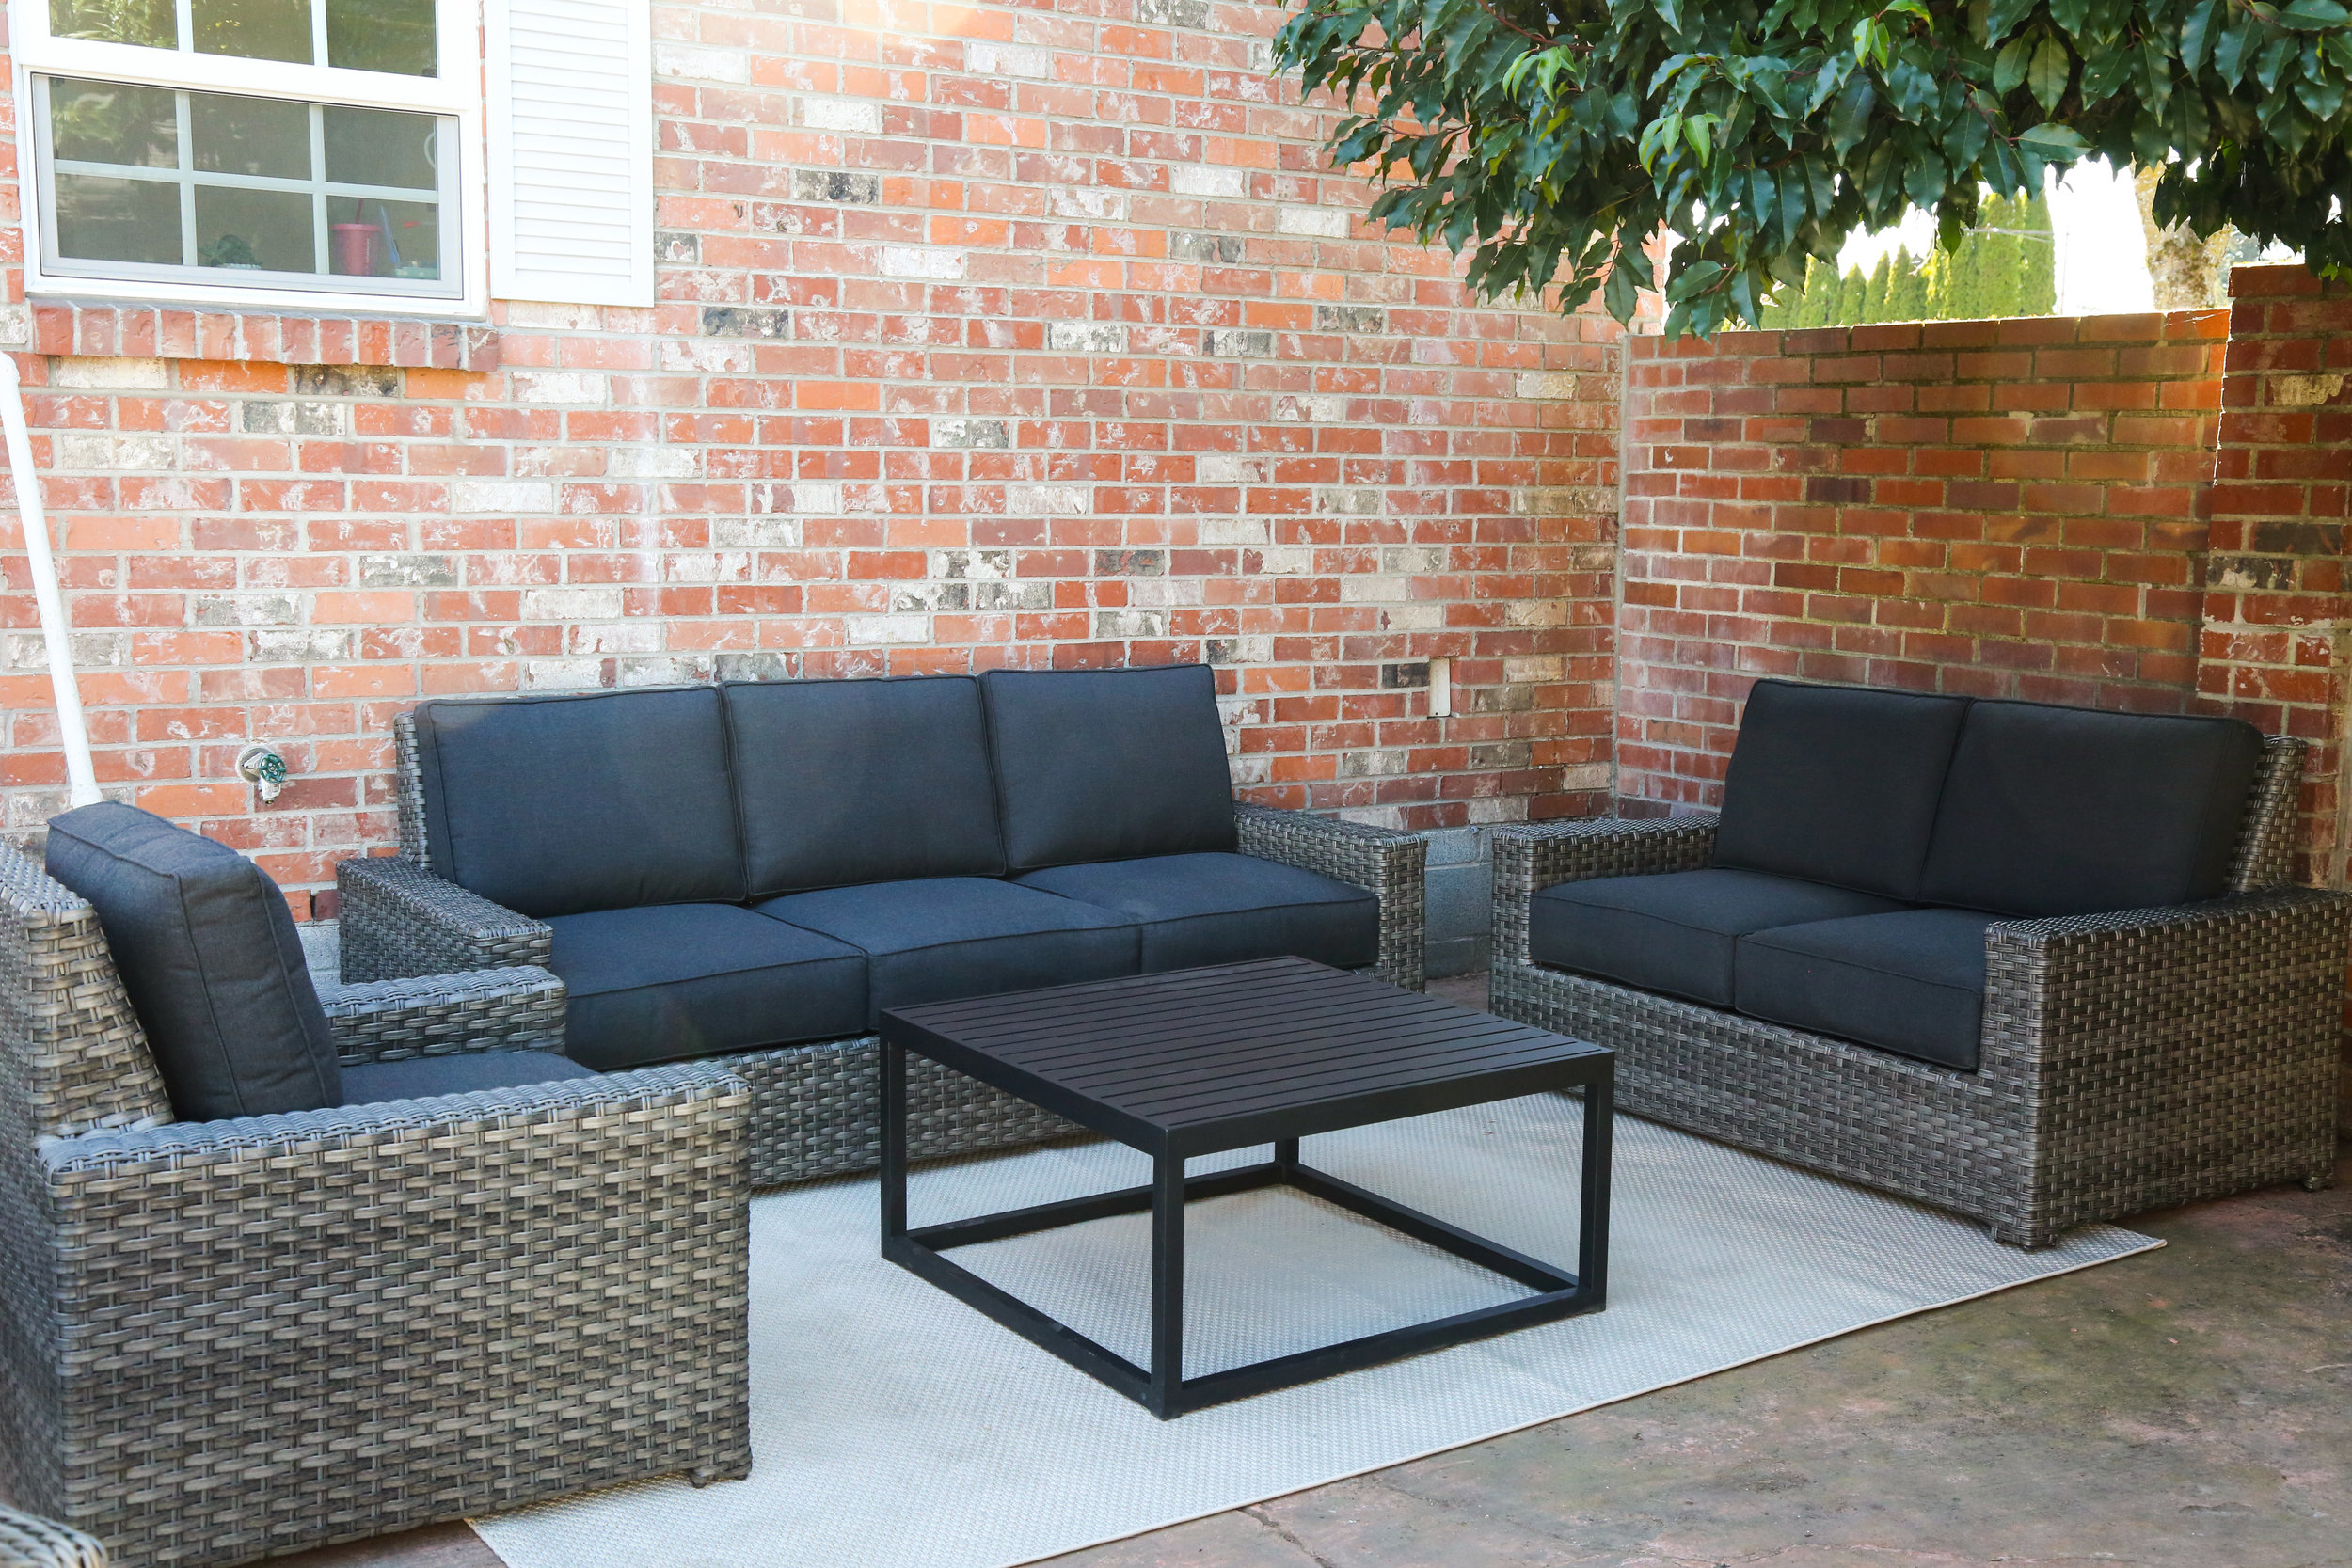 Patio Furniture - High quality long lasting furniture.